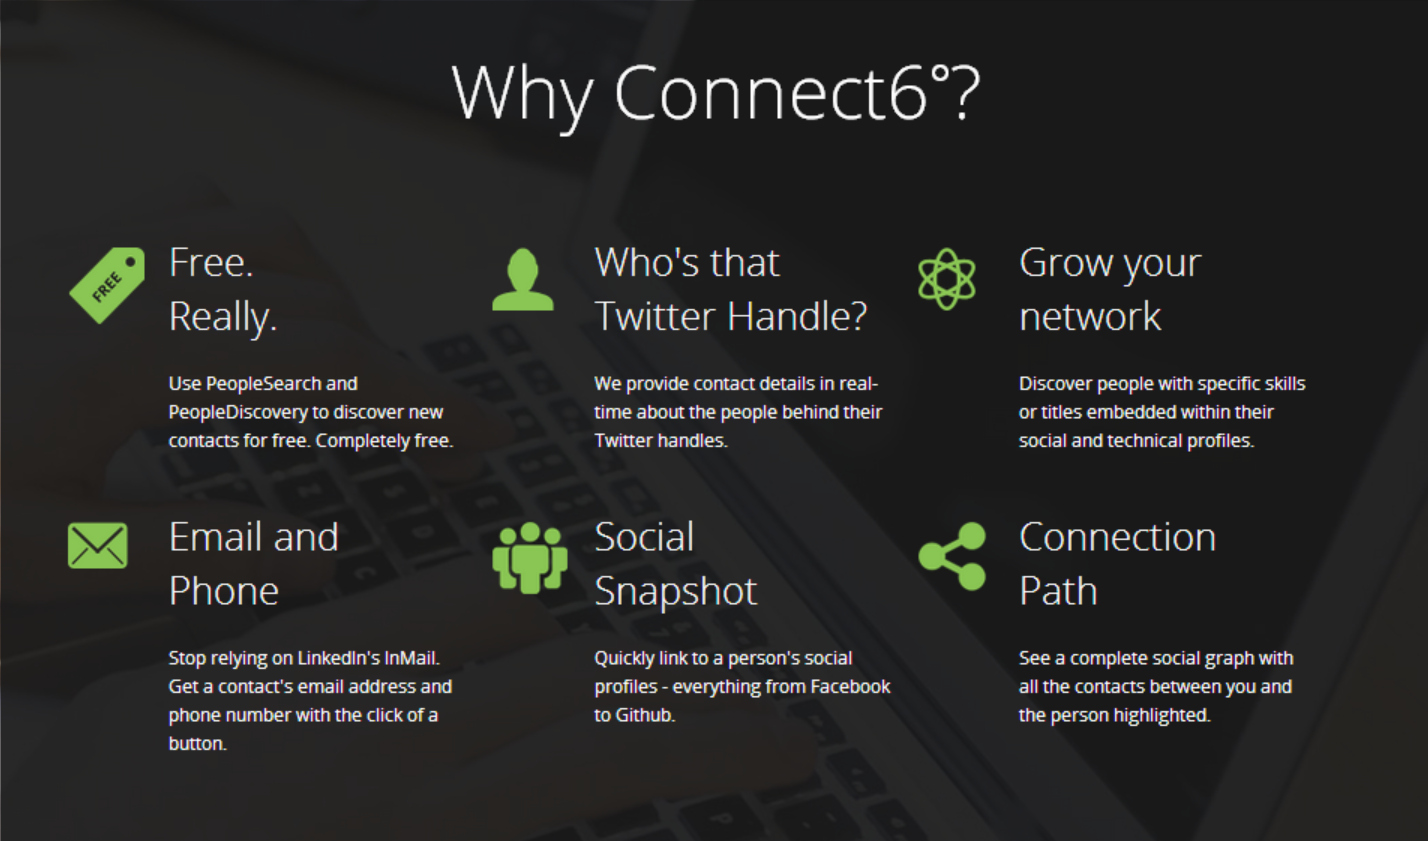 Connect6: WHY